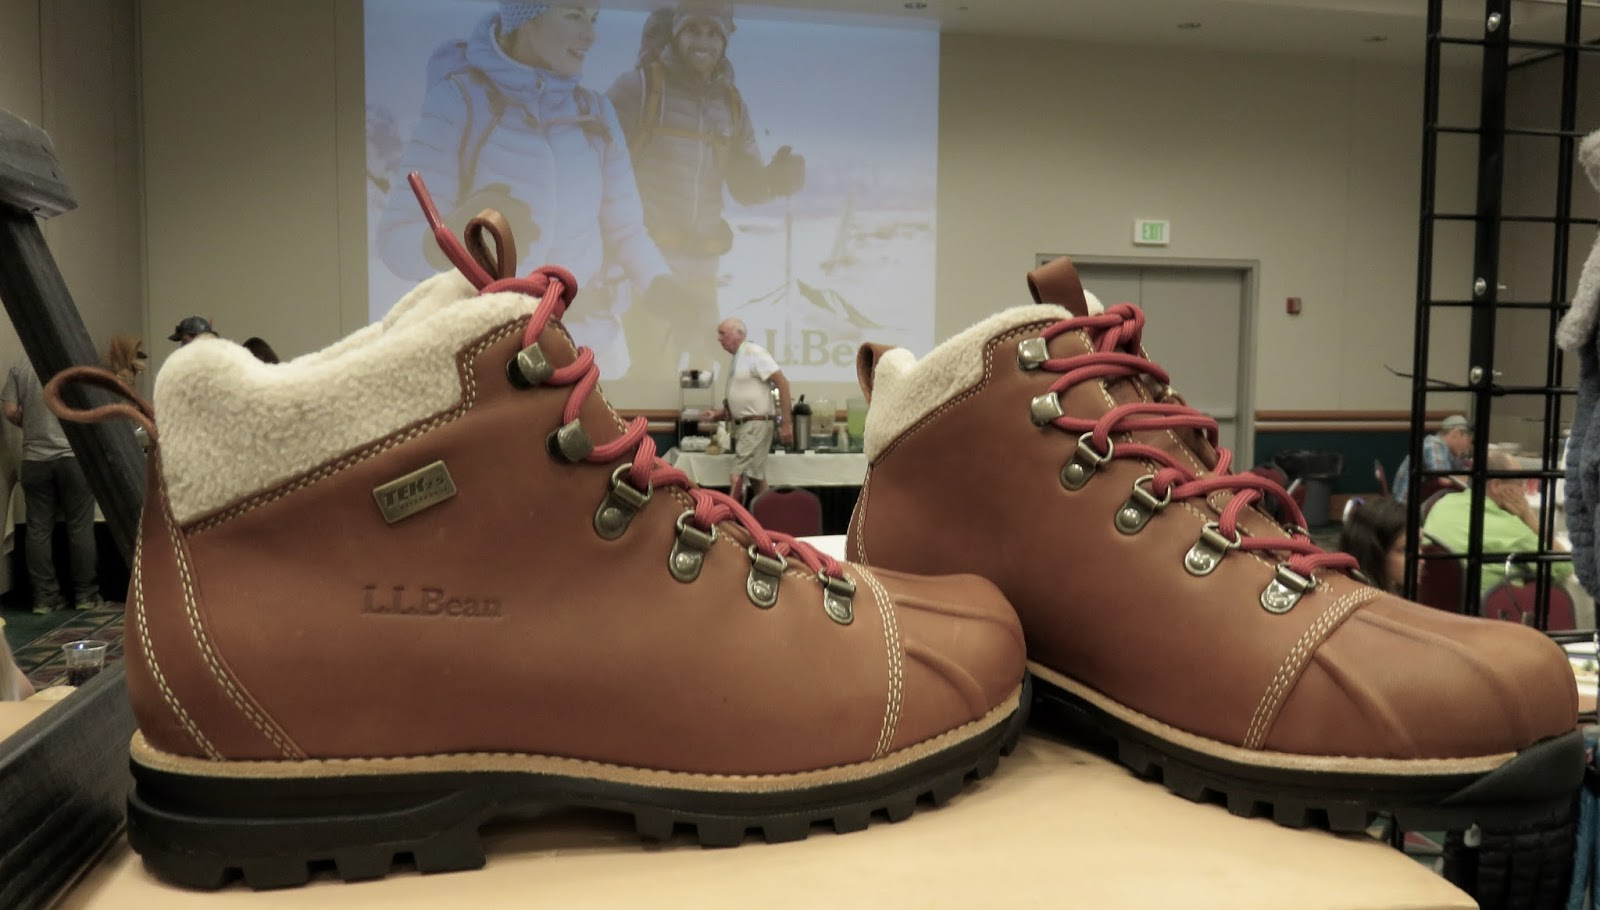 d2bd235ce LL Bean new Knife Edge Hiking Boots-women s Oakwood color- pictured  179  sport a classic line design